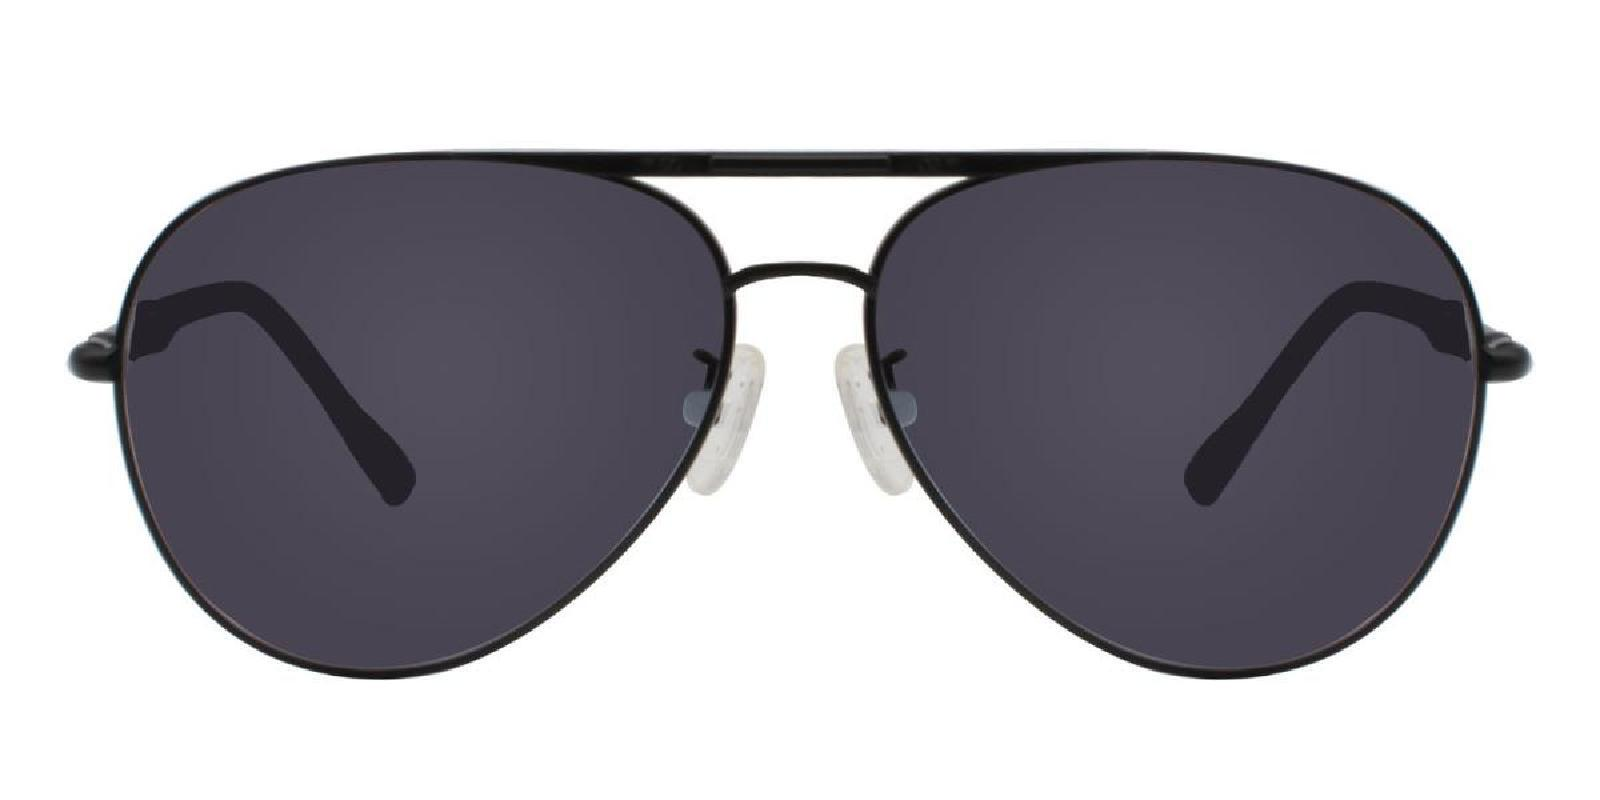 Seeker-Black-Aviator-Metal-Sunglasses-additional2